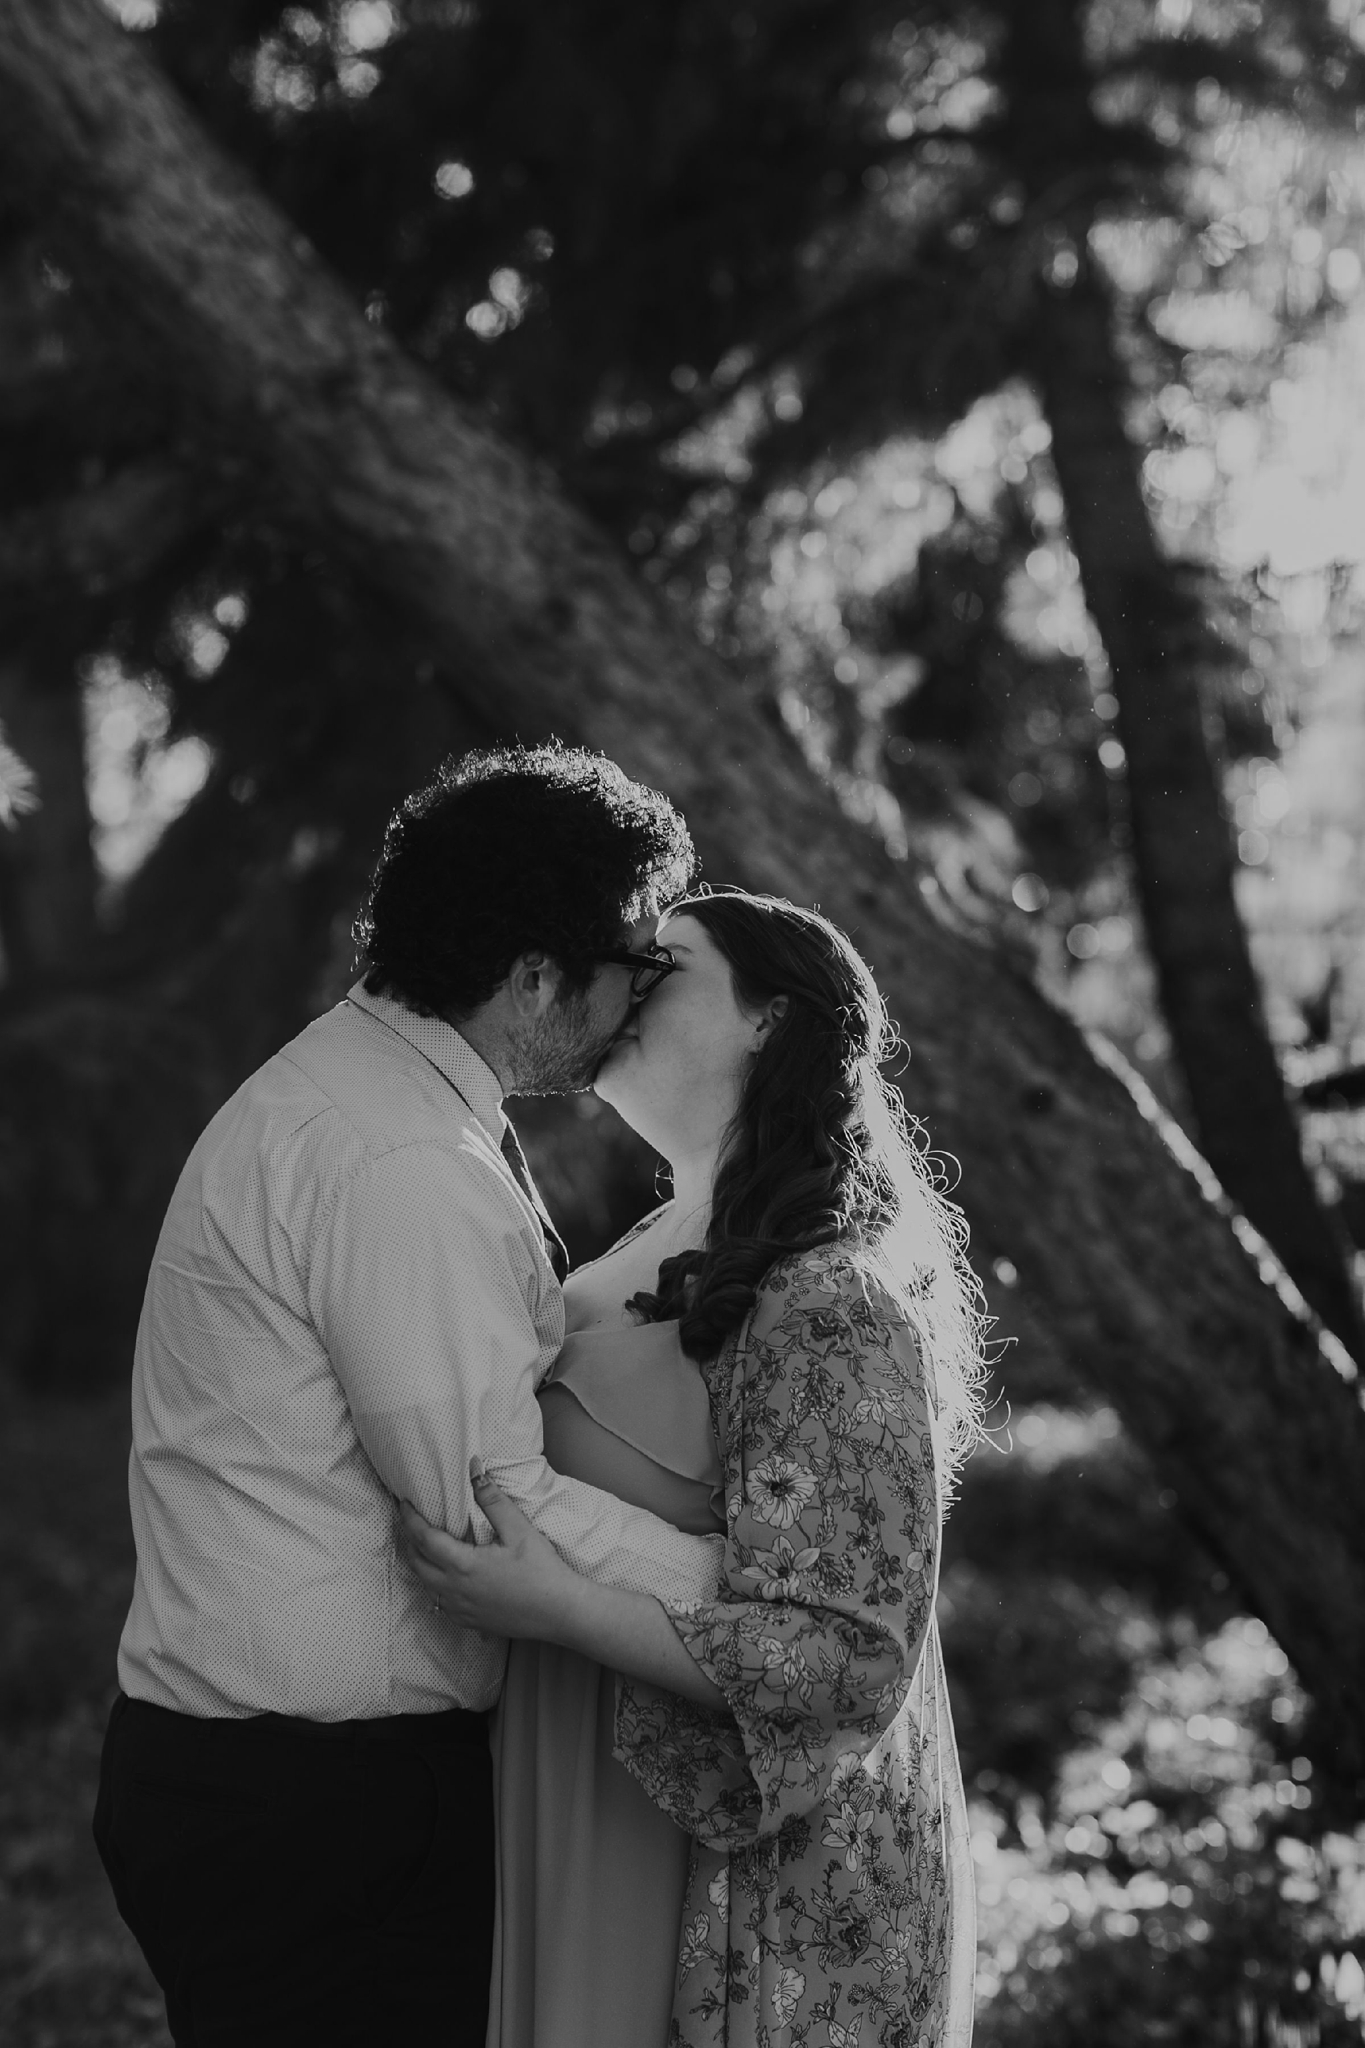 Alicia+lucia+photography+-+albuquerque+wedding+photographer+-+santa+fe+wedding+photography+-+new+mexico+wedding+photographer+-+new+mexico+engagement+-+los+poblanos+engagement+-+spring+engagement_0014.jpg